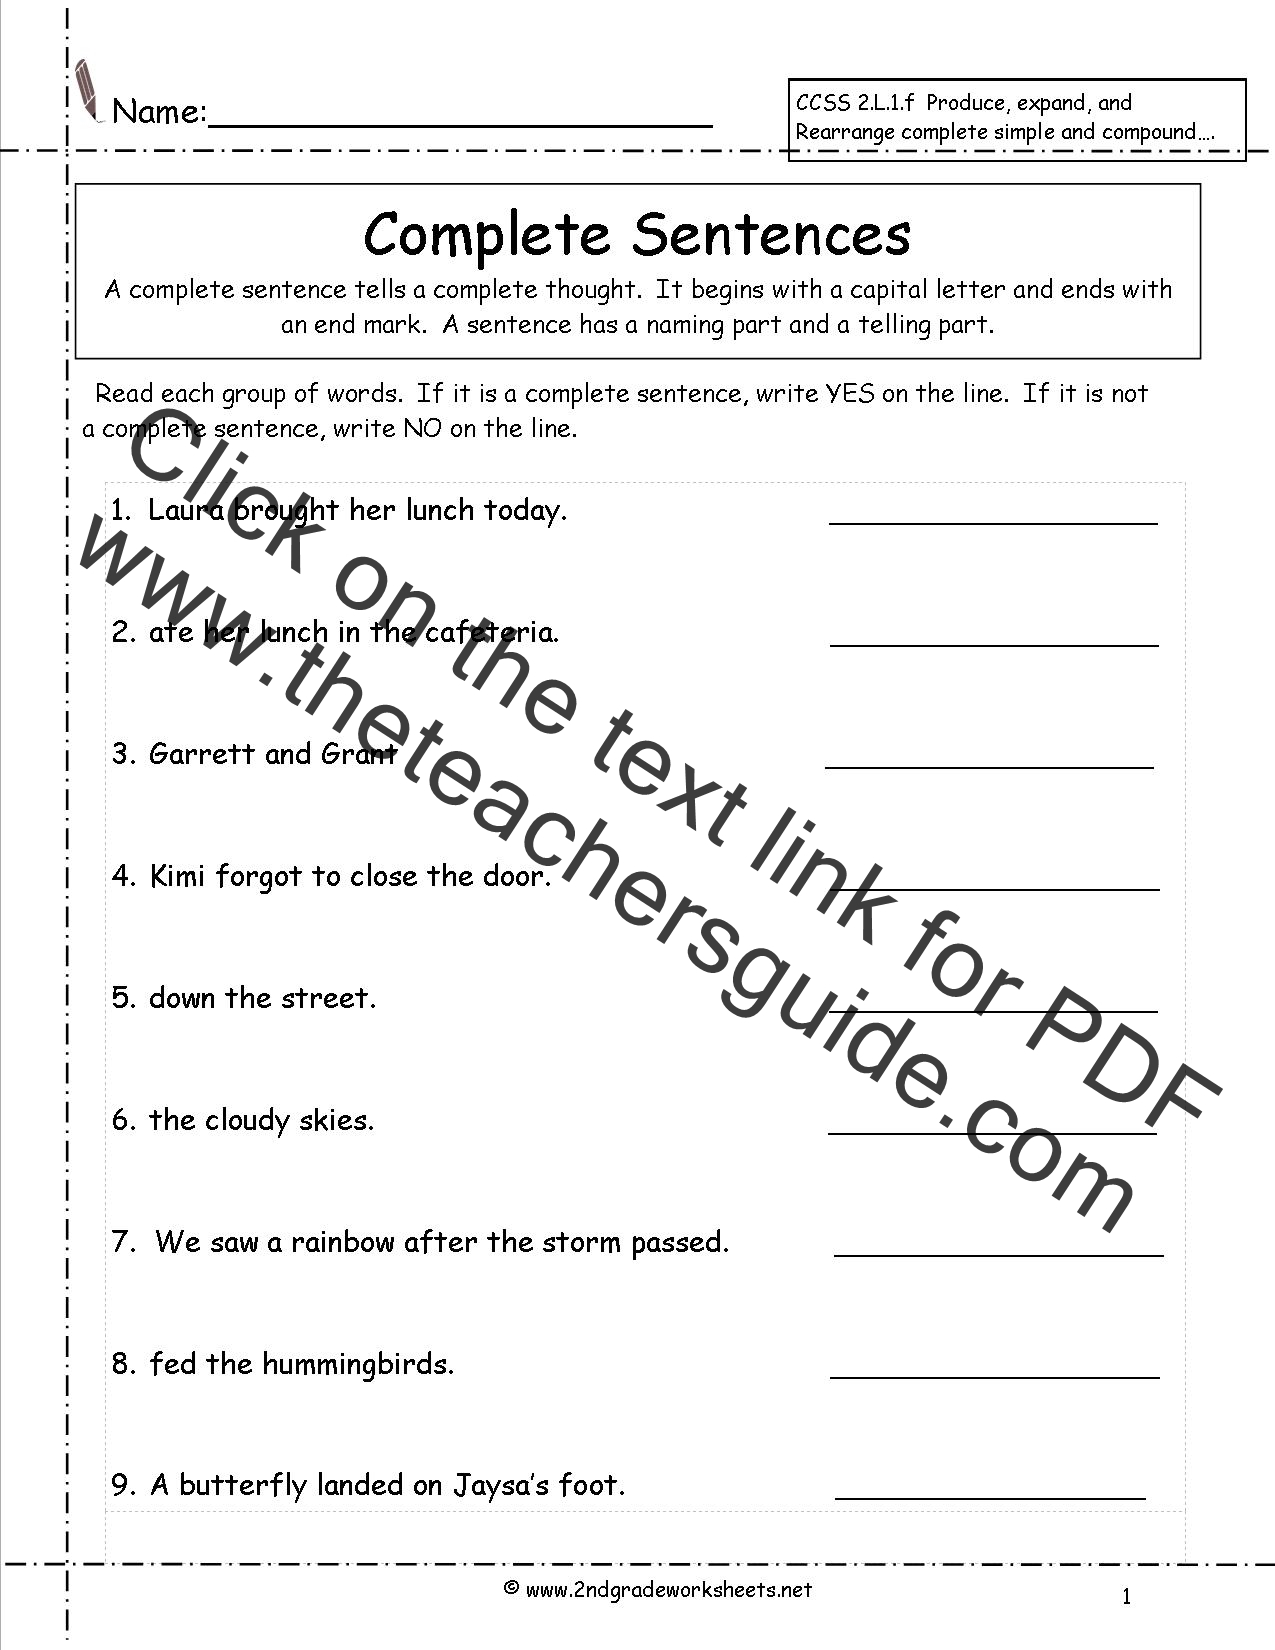 Printables 2nd Grade Grammar Worksheets second grade sentences worksheets ccss 2 l 1 f complete worksheets